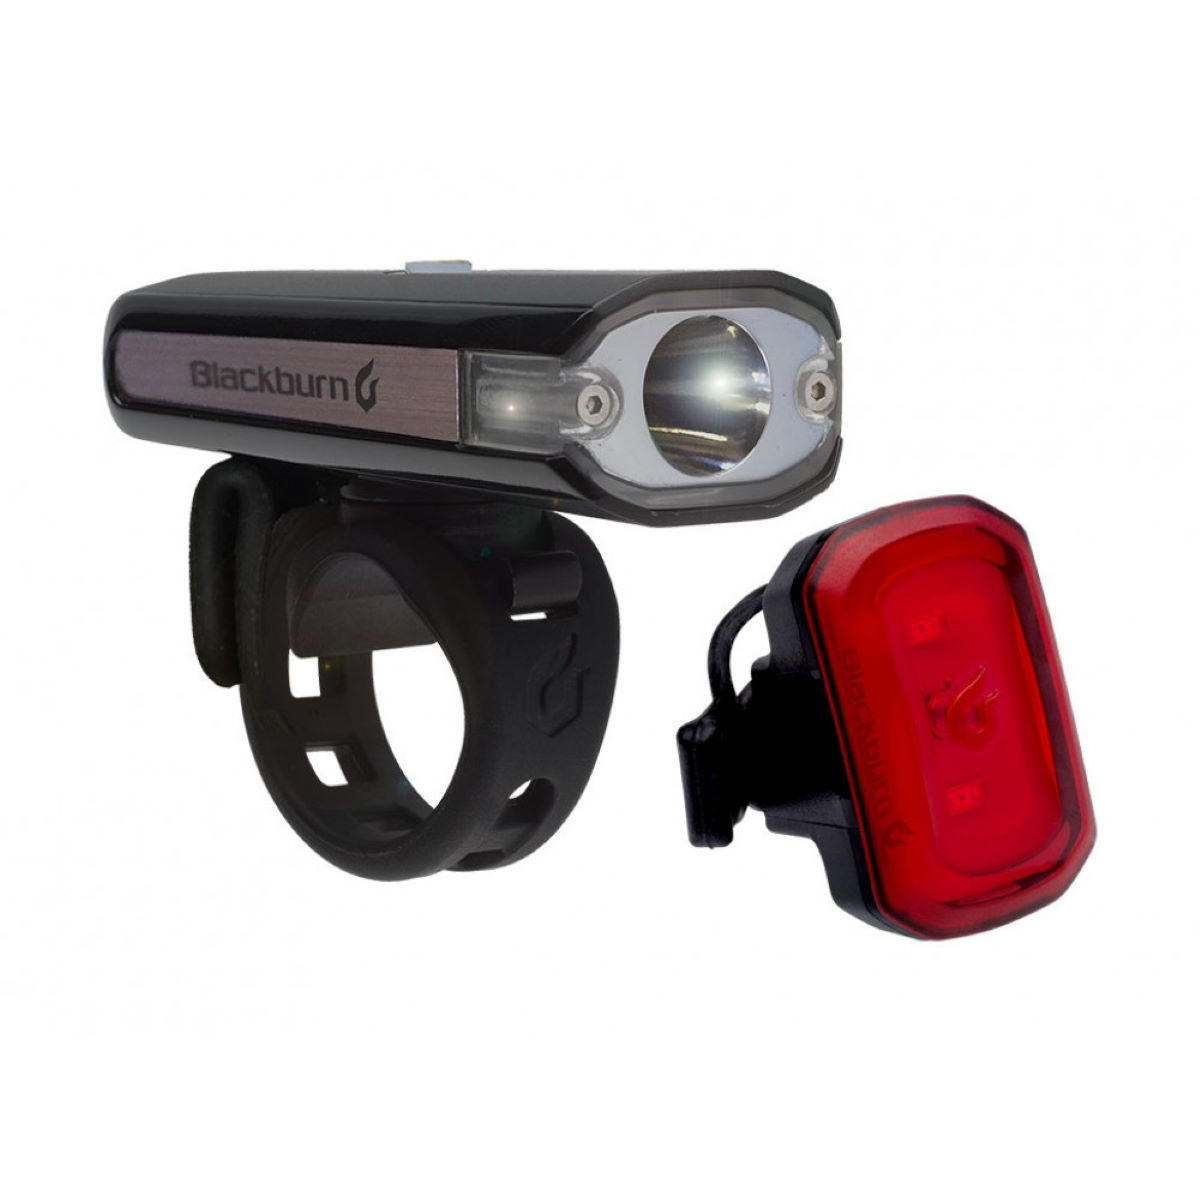 Blackburn Central 200 Front and USB Rear Light Set - Juegos de luces